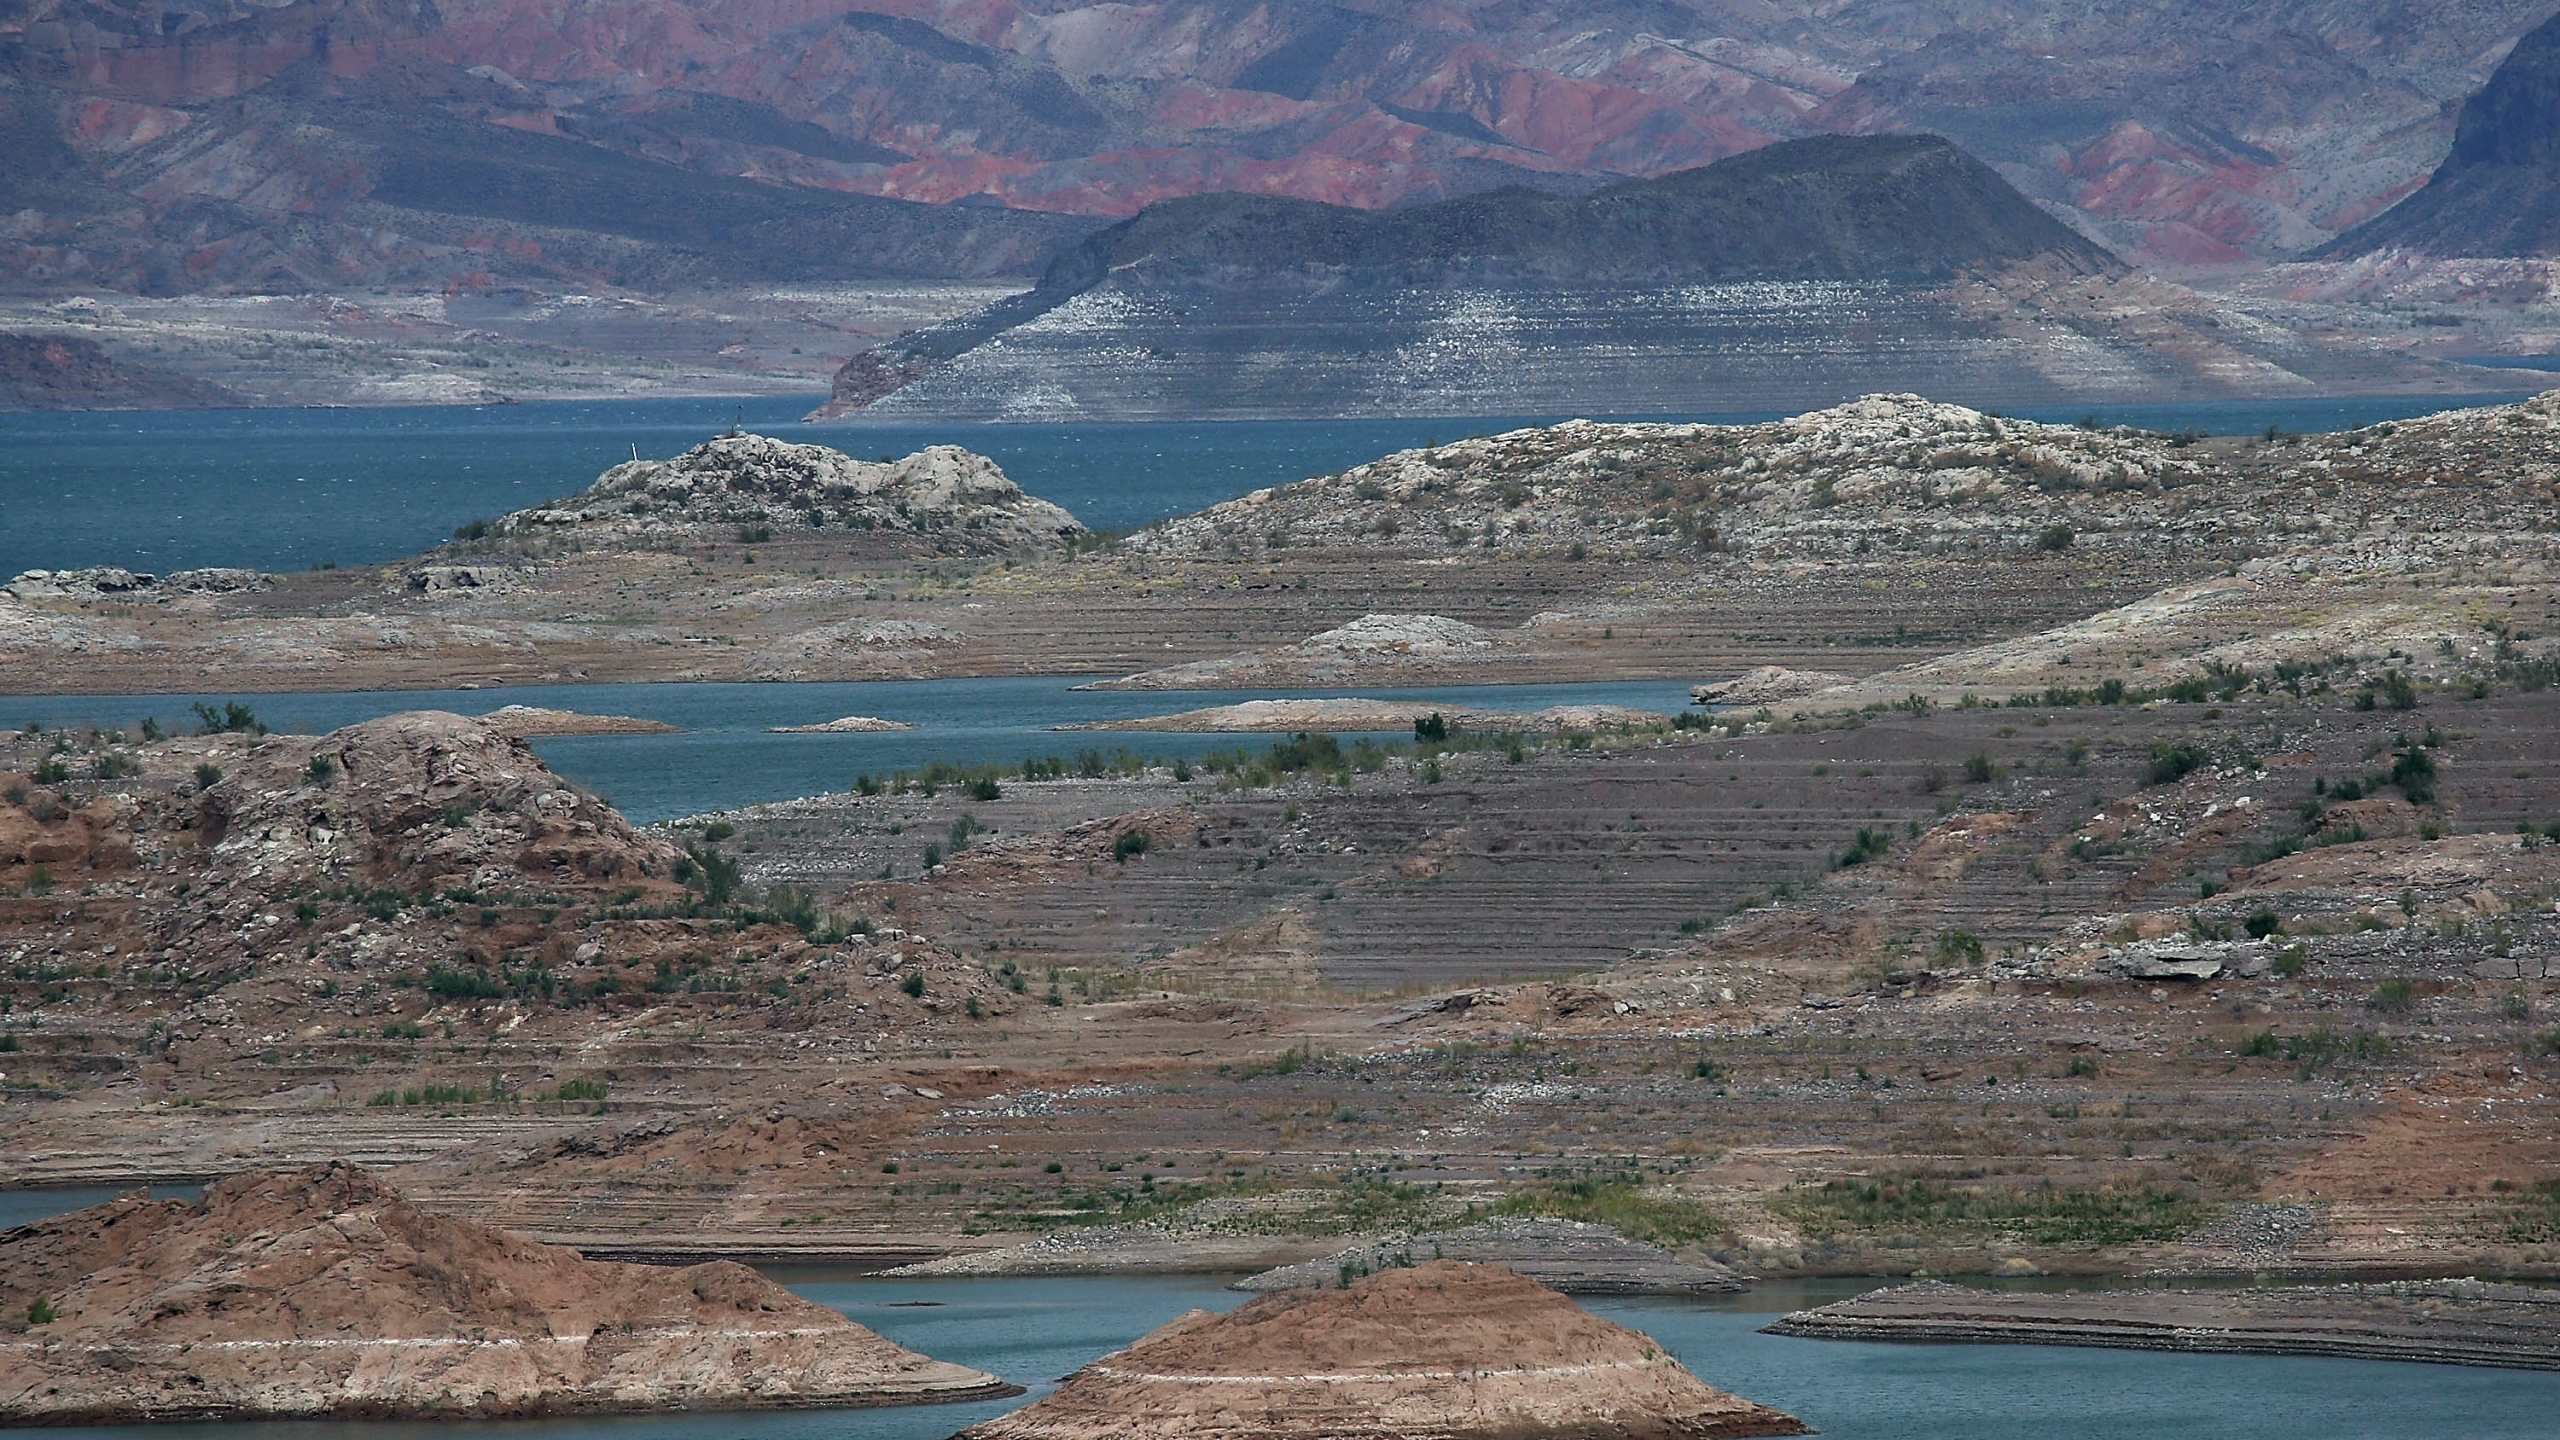 Low water levels are visible at Lake Mead on May 13, 2015, in Nevada's Lake Mead National Recreation Area. (Credit: Justin Sullivan / Getty Images)